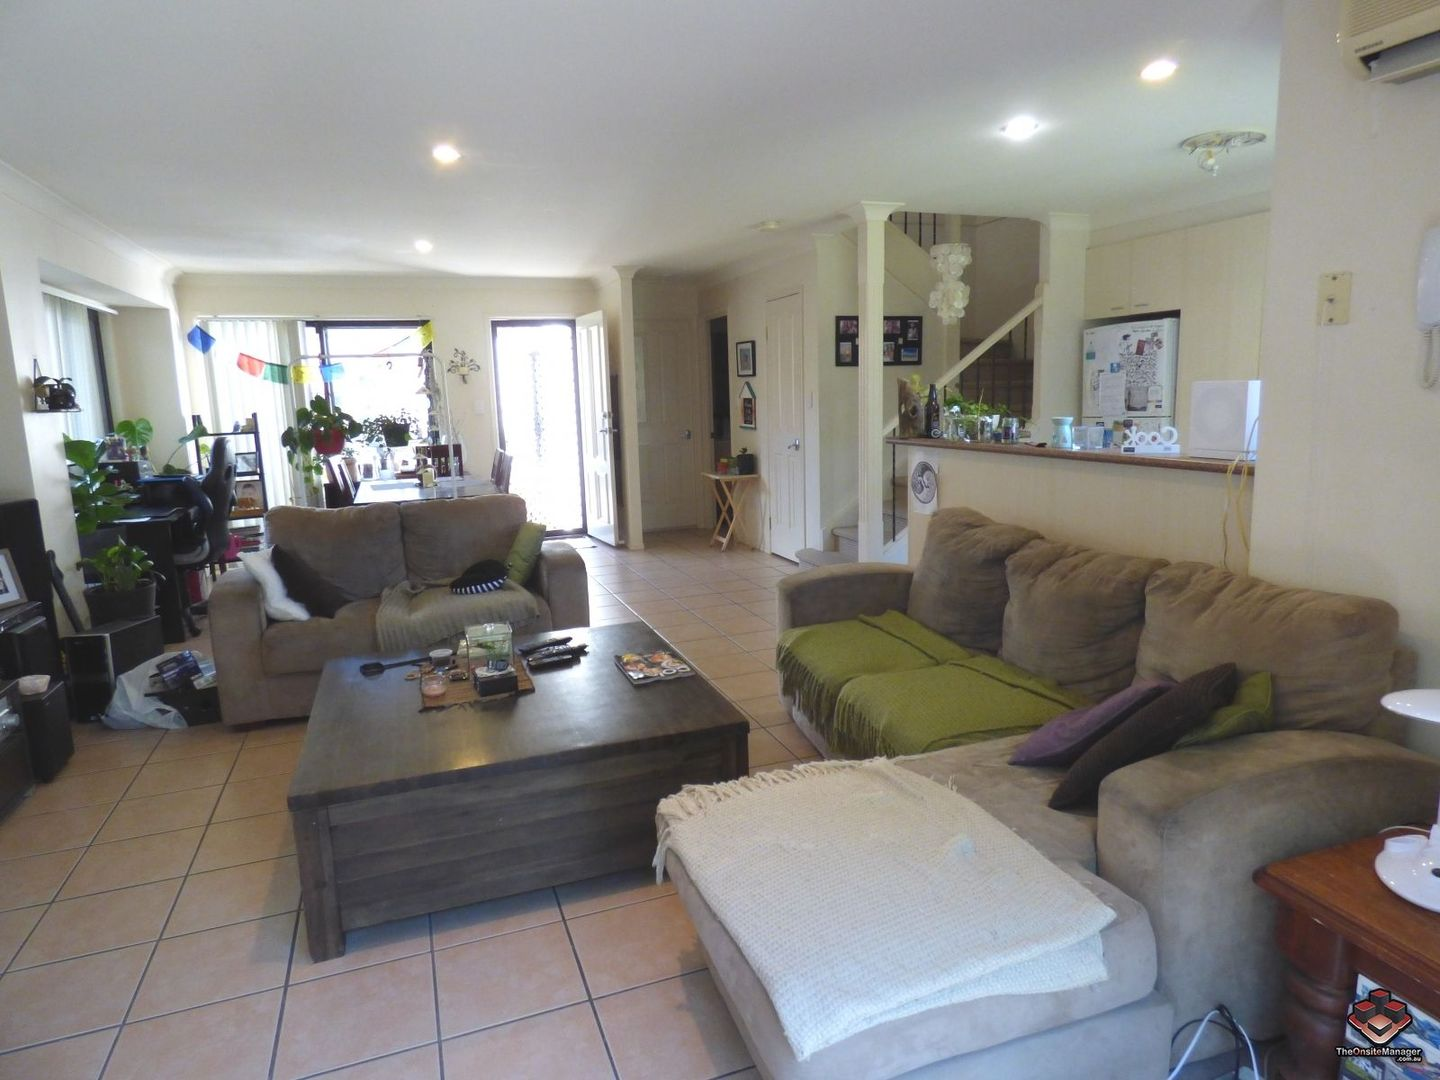 15/2 Tuition Street, Upper Coomera QLD 4209, Image 2